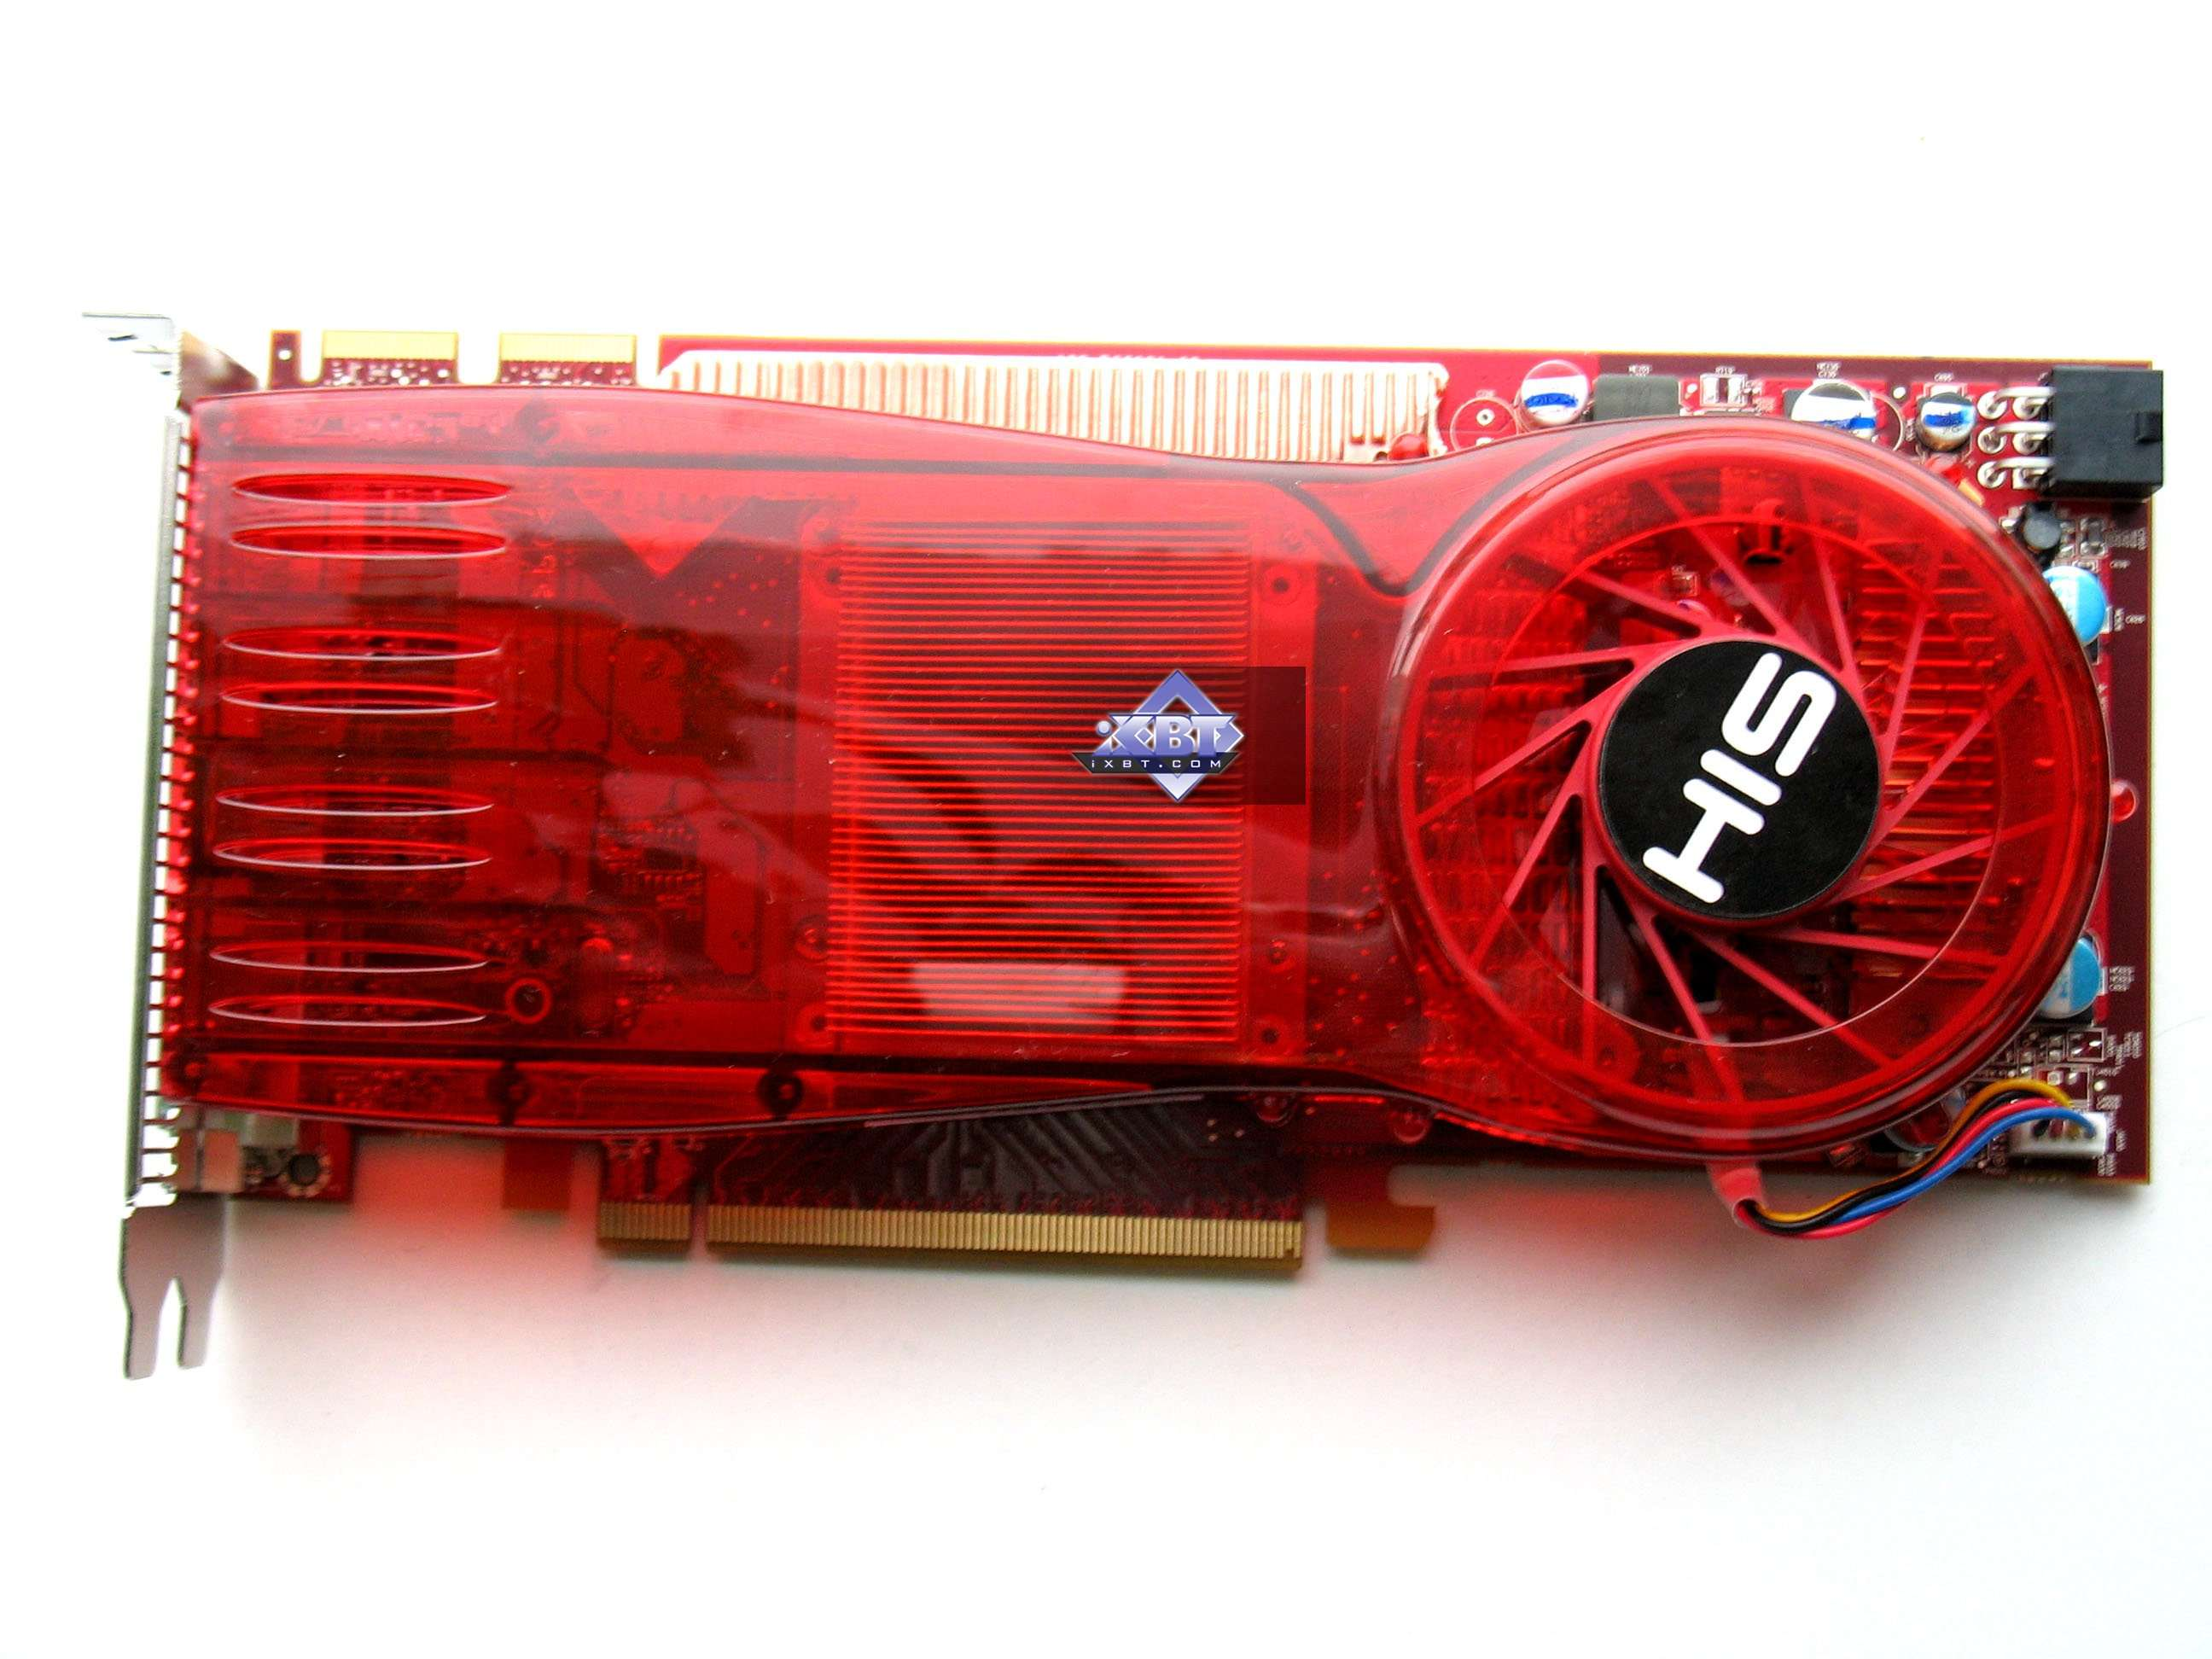 His radeon hd 3870 x2 review